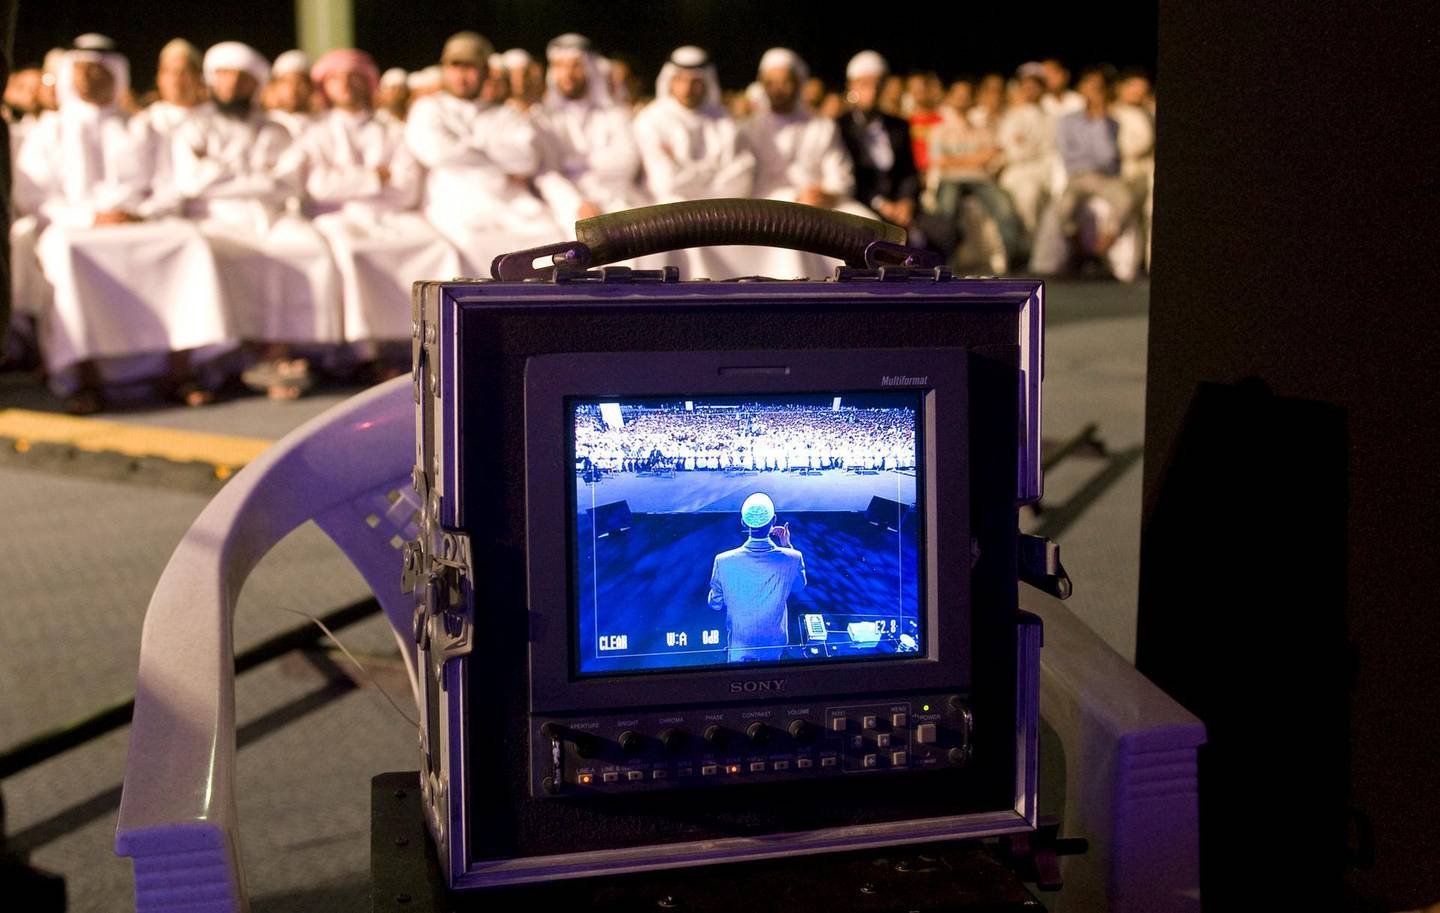 Dubai - August 27, 2009 - Dr. Zakir Naik can be seen on the TV monitor as he speaks before 15,000 people at the Dubai Airport Expo Center in Dubai August 27, 2009.  (Photo by Jeff Topping/The National)  *** Local Caption ***  JT008-0827-DR. ZAKIR NAIK_MG_0707.jpg